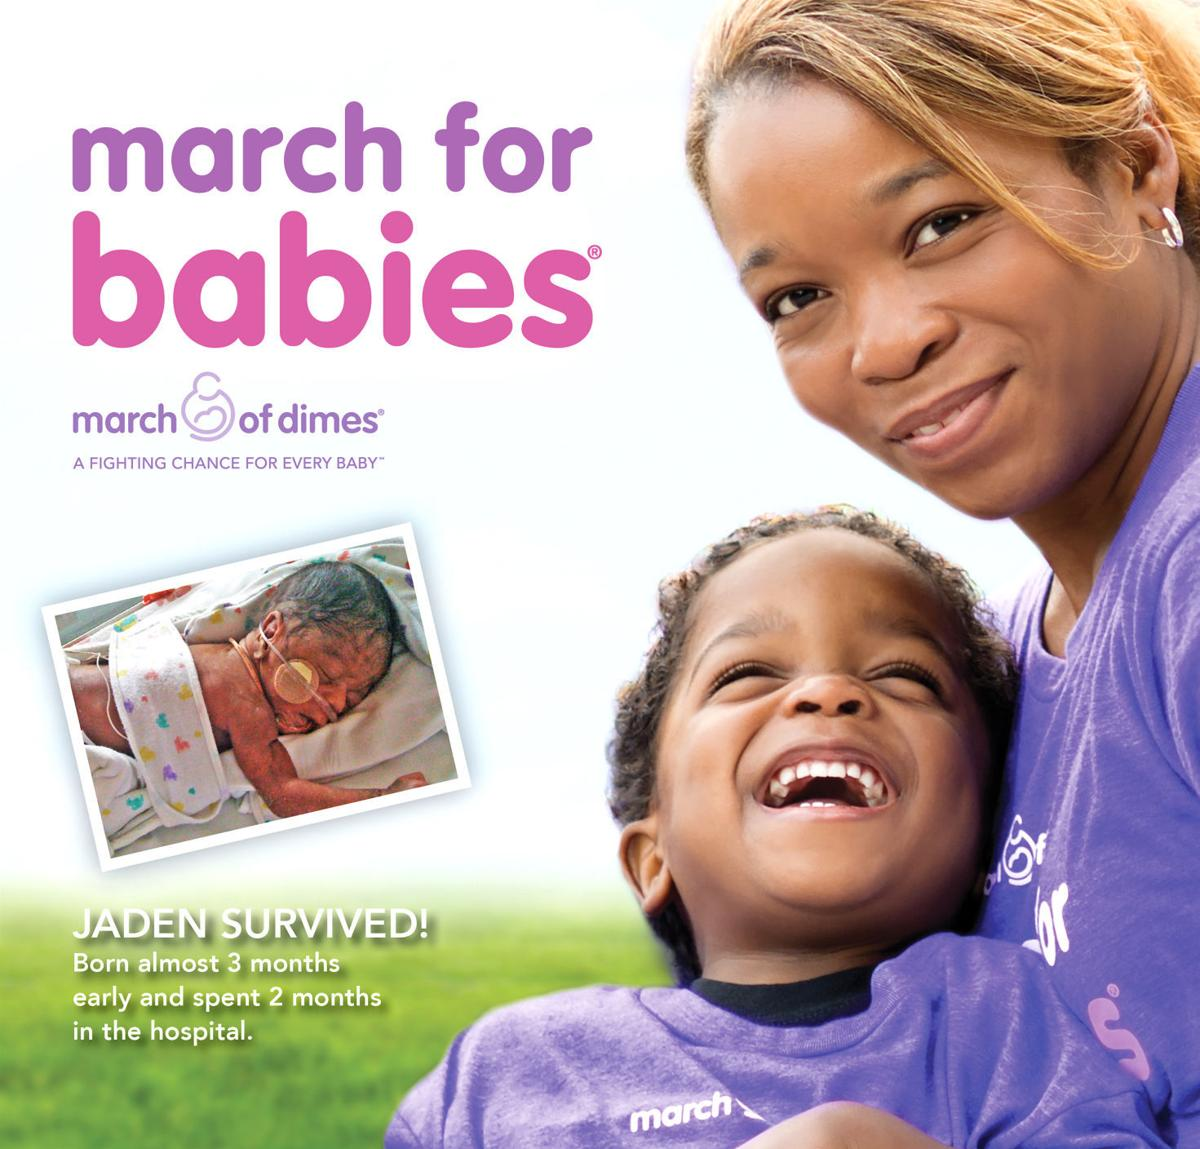 2017 greeneville march for babies planned april 30 at laughlin 2017 greeneville march for babies planned april 30 at laughlin walking trail m4hsunfo